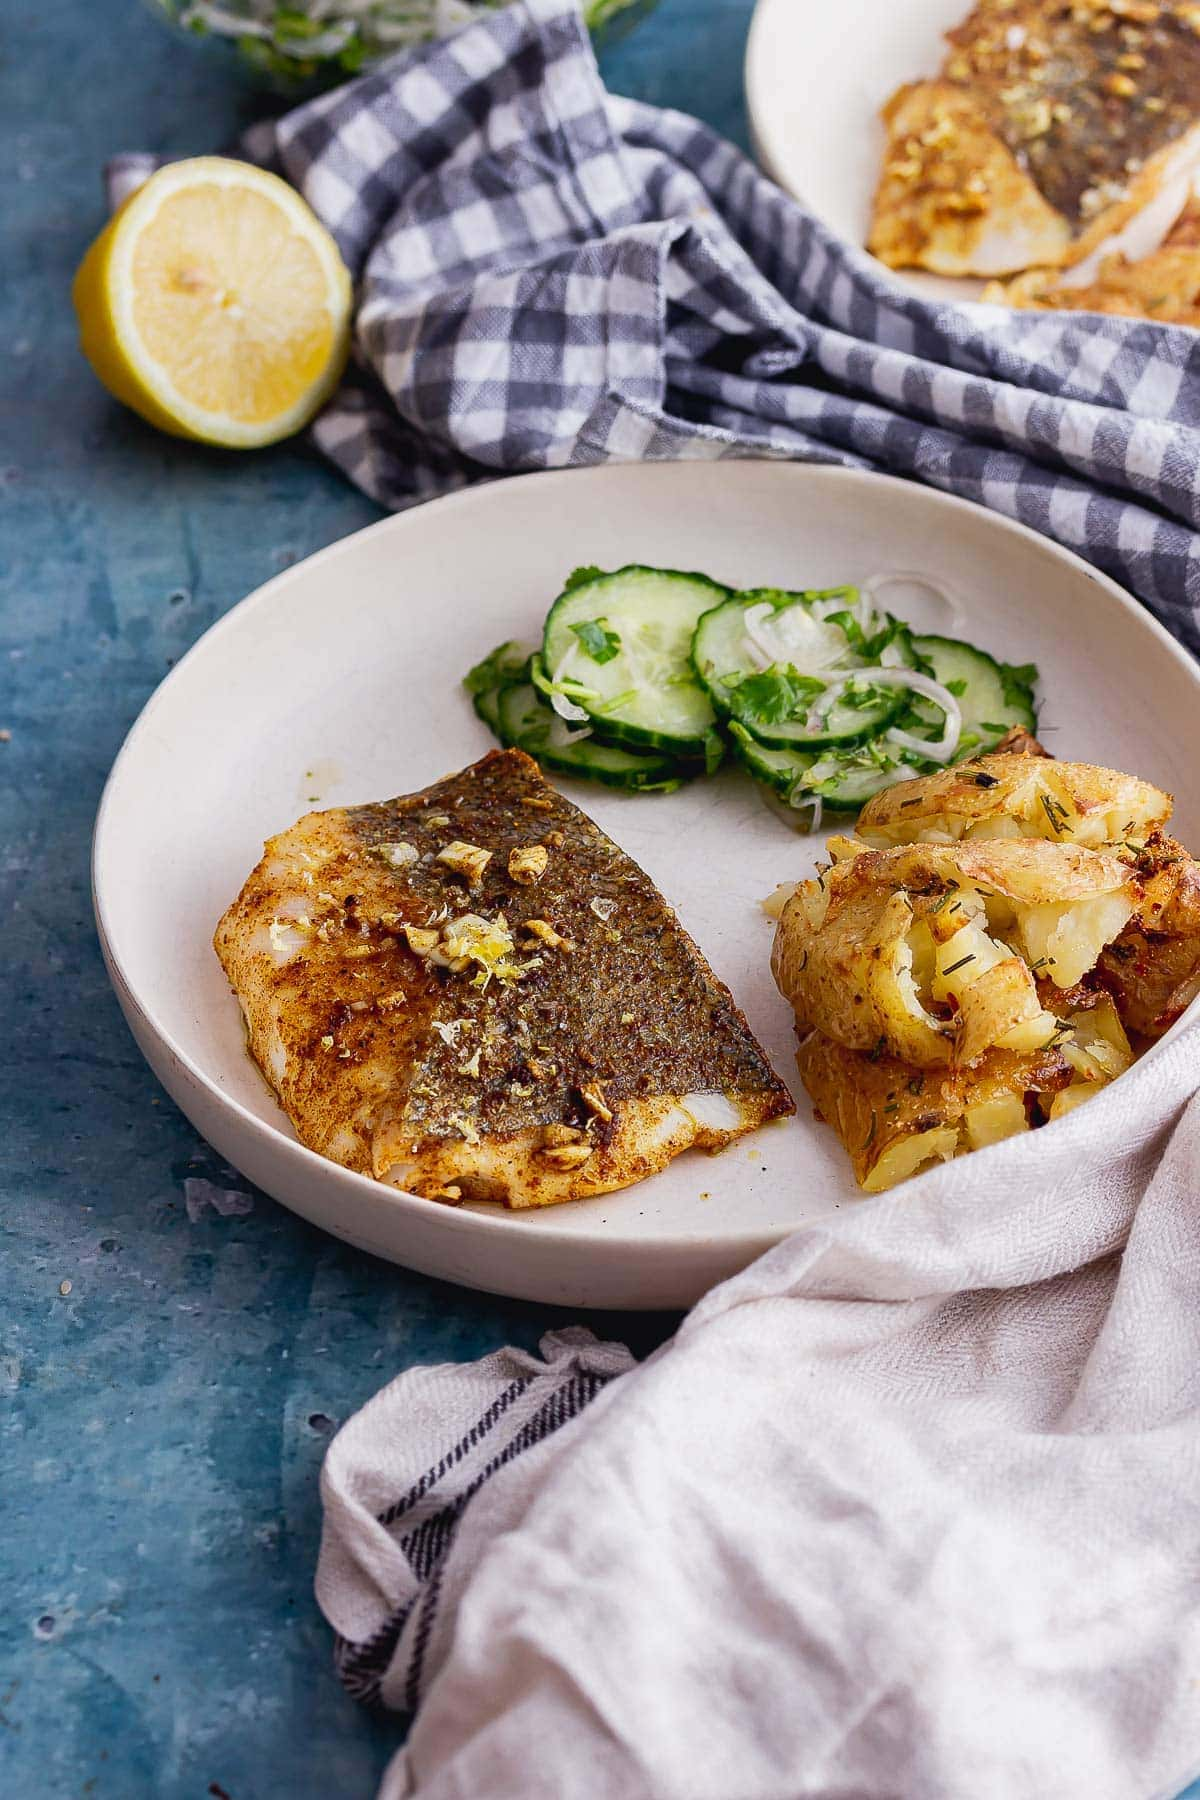 Spiced baked fish on a blue background